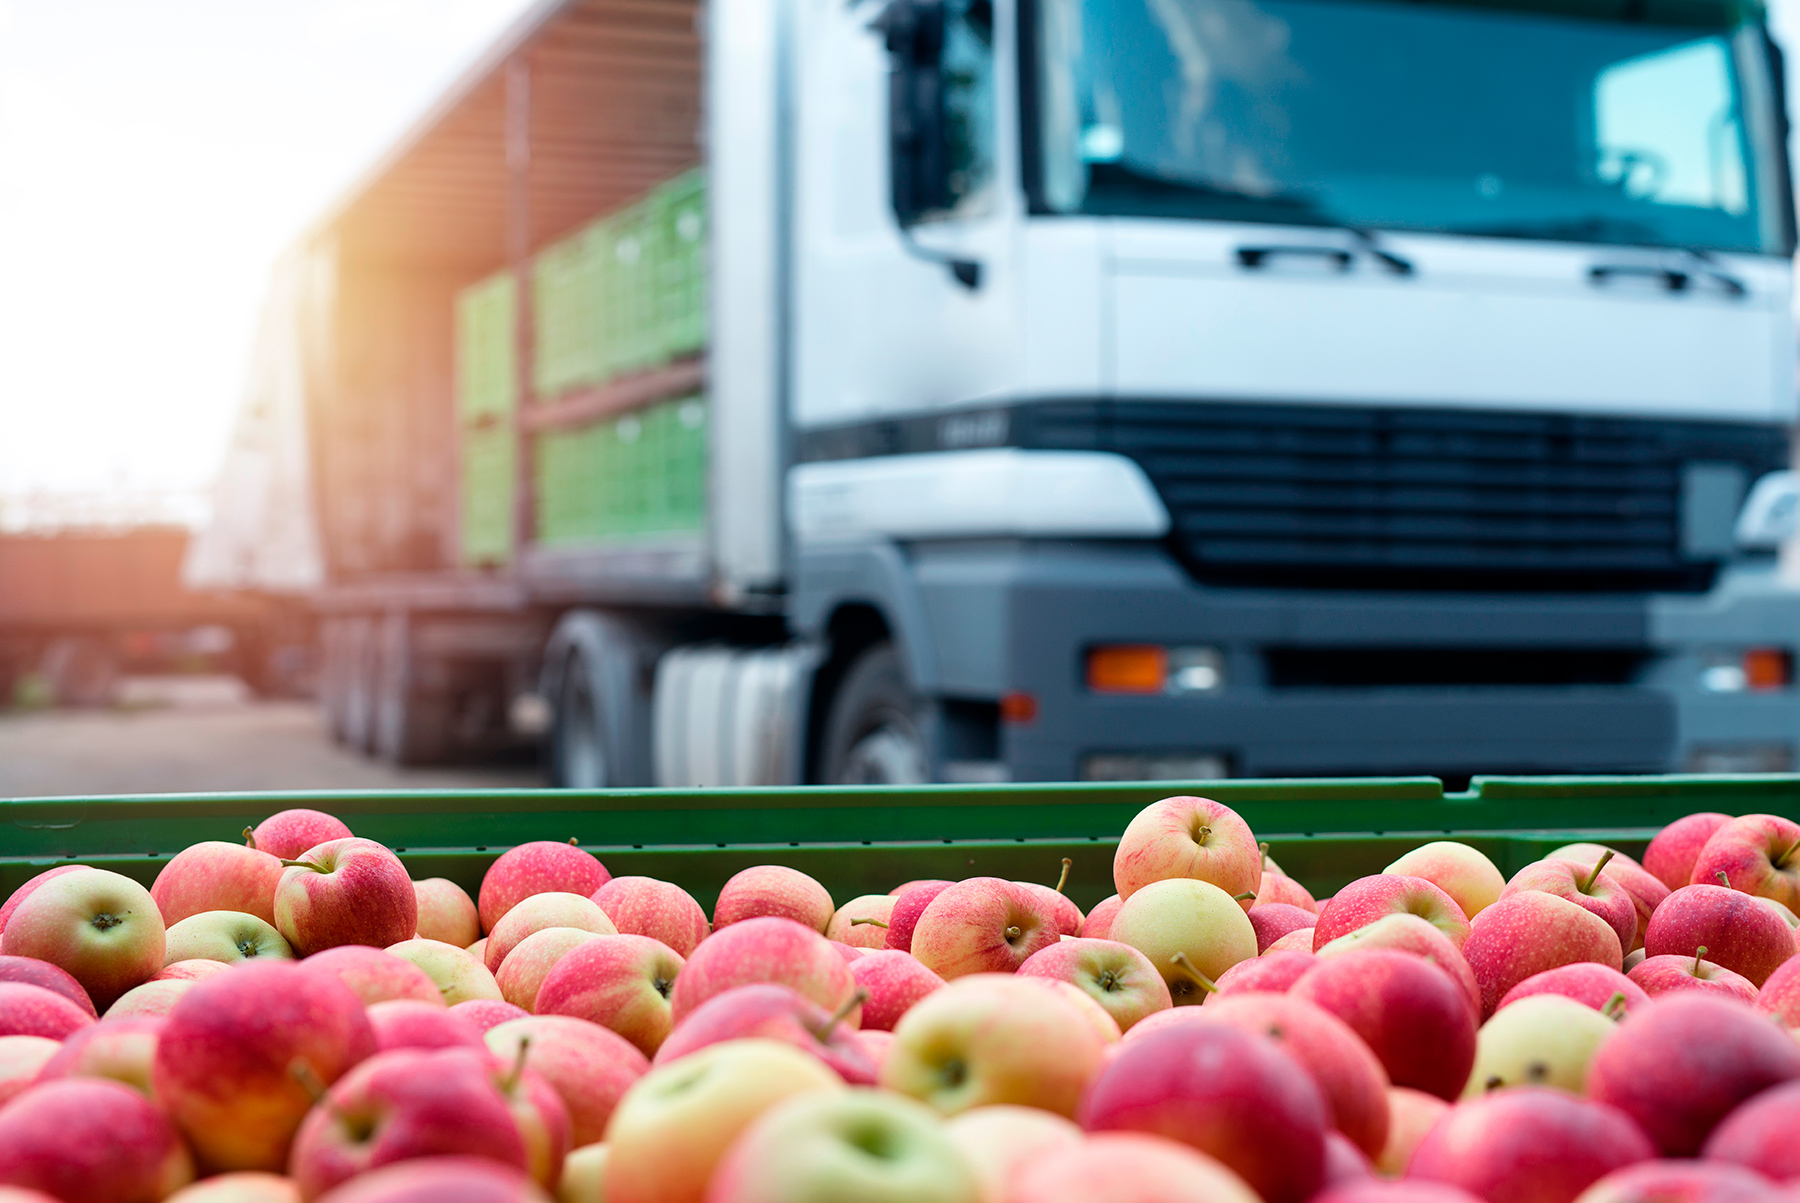 Apples in crate by lorry